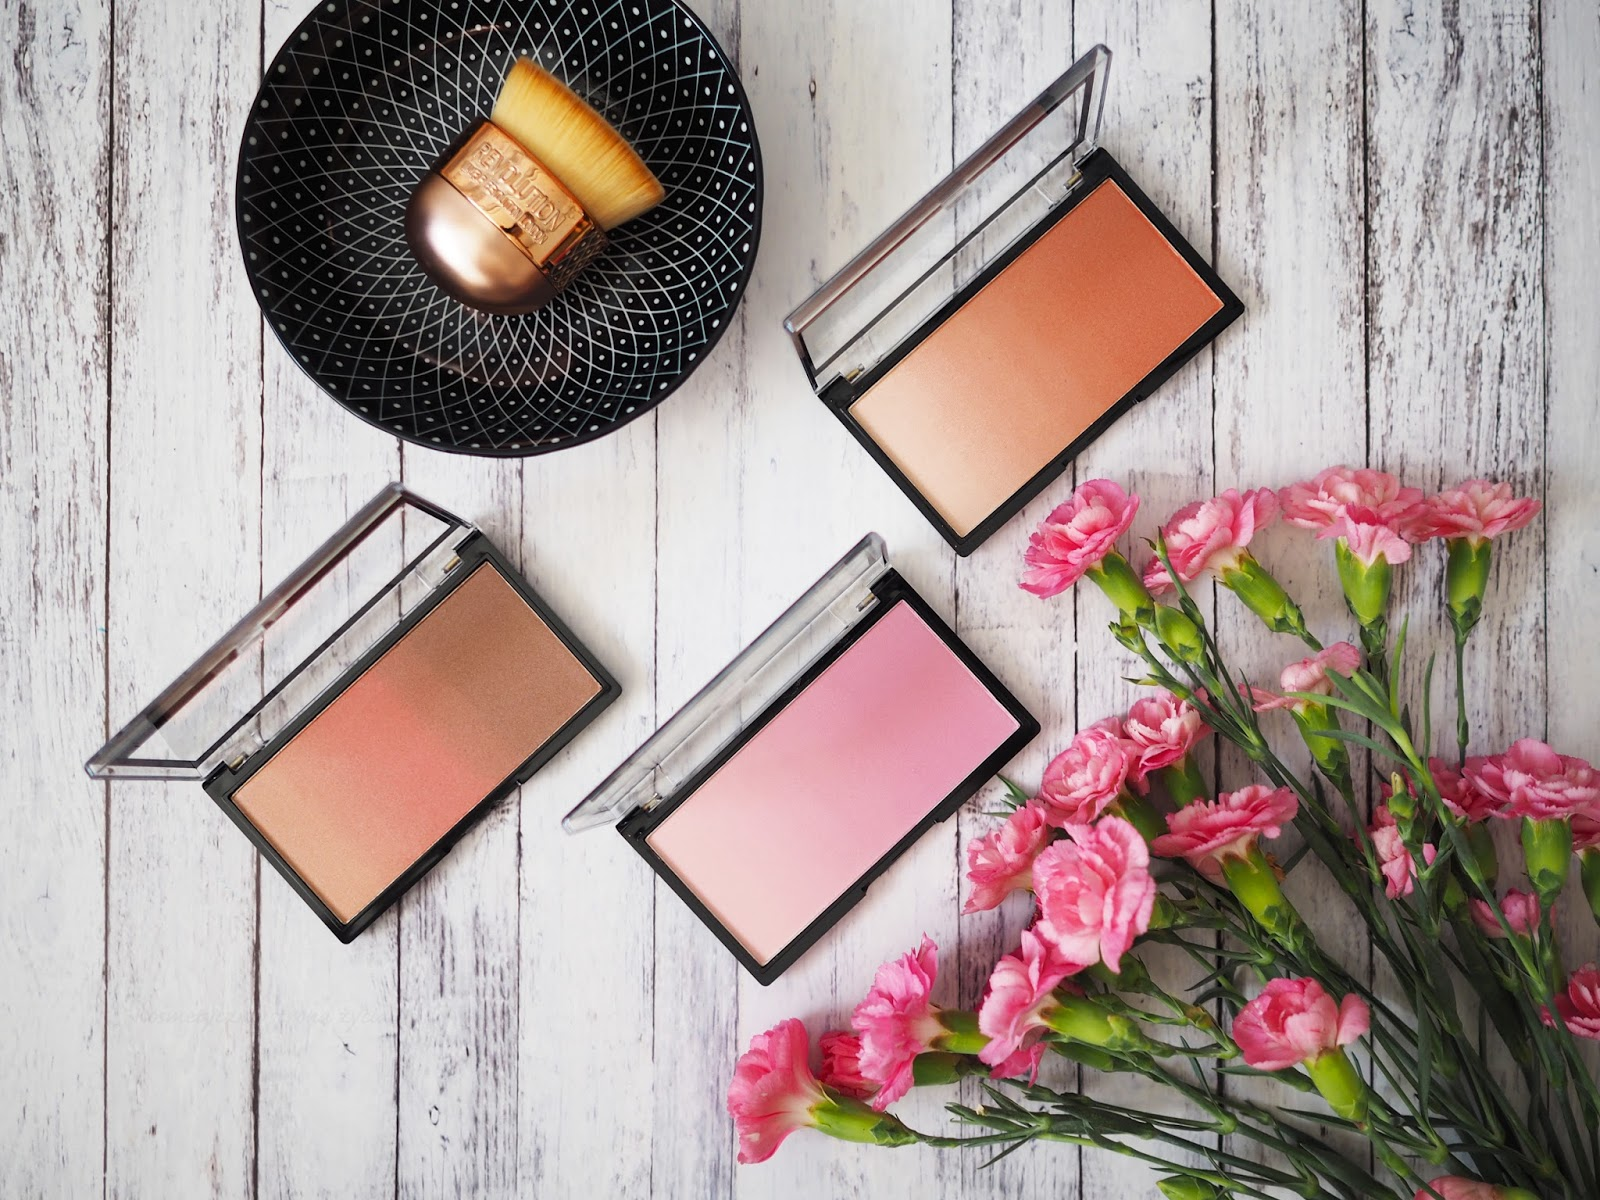 MAKEUP REVOLUTION GRADIENT HIGHLIGHTER ROSE QUARTZ LIGHT & PEACH MOOD LIGHTS & SUNLIGHT MOOD LIGHTS